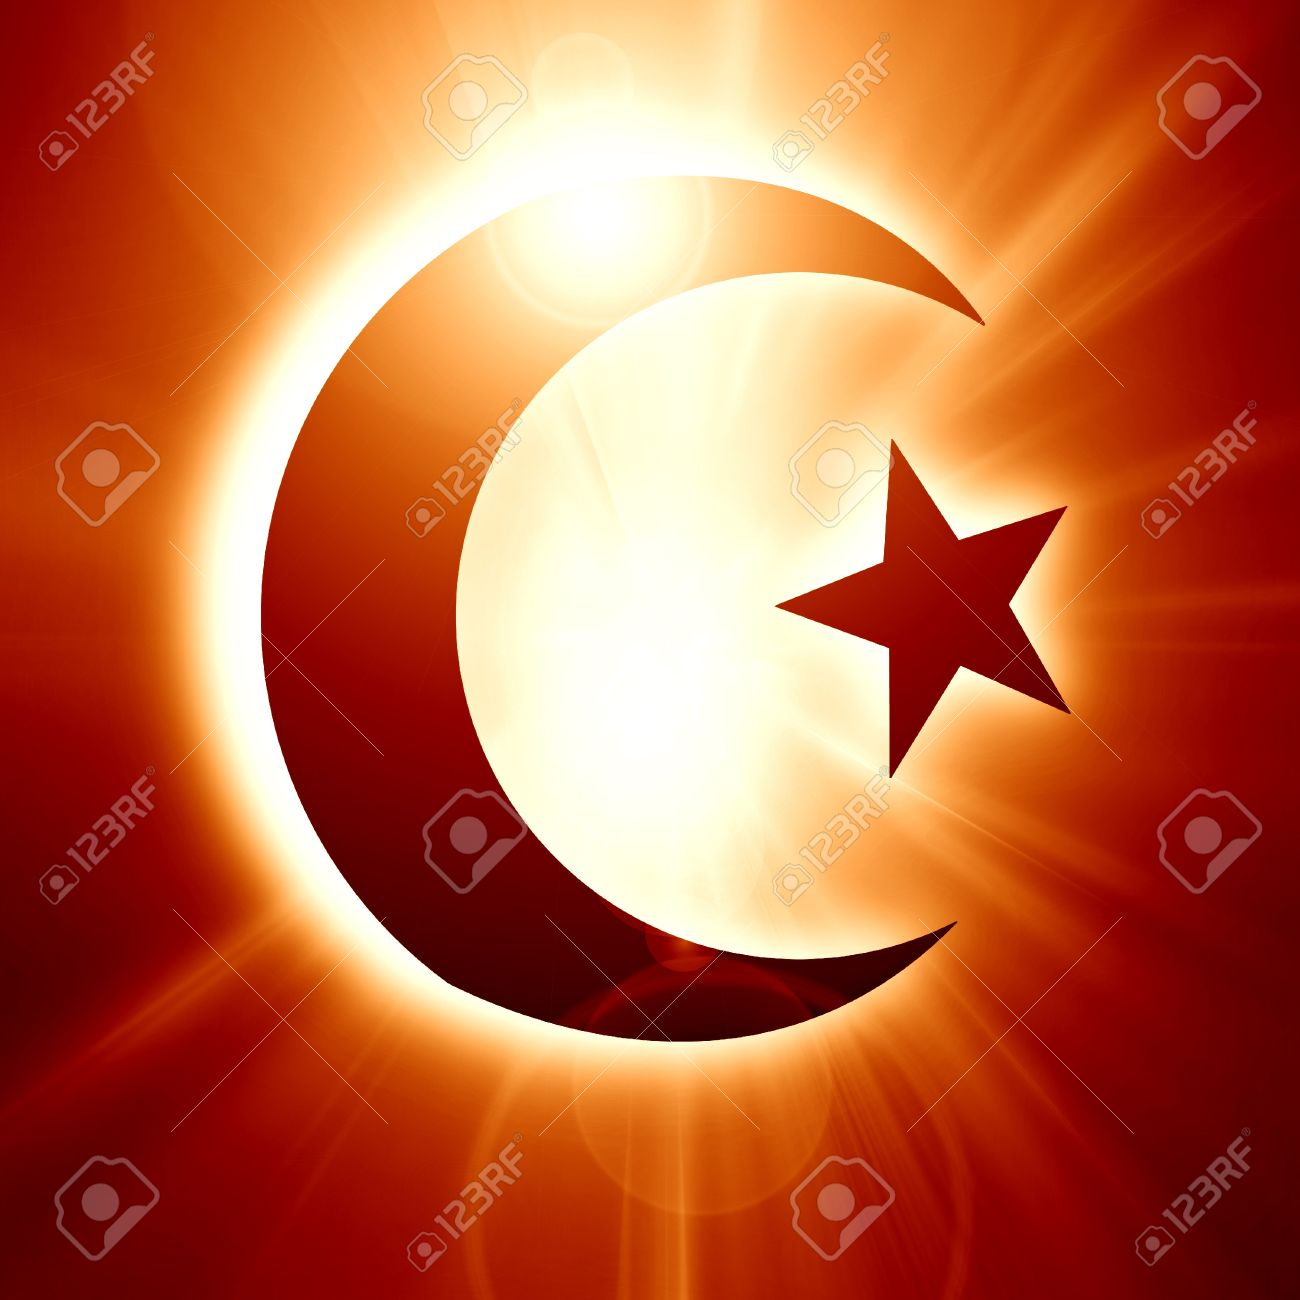 The symbol of Islam with a crescent and star Stock Photo - 14670064